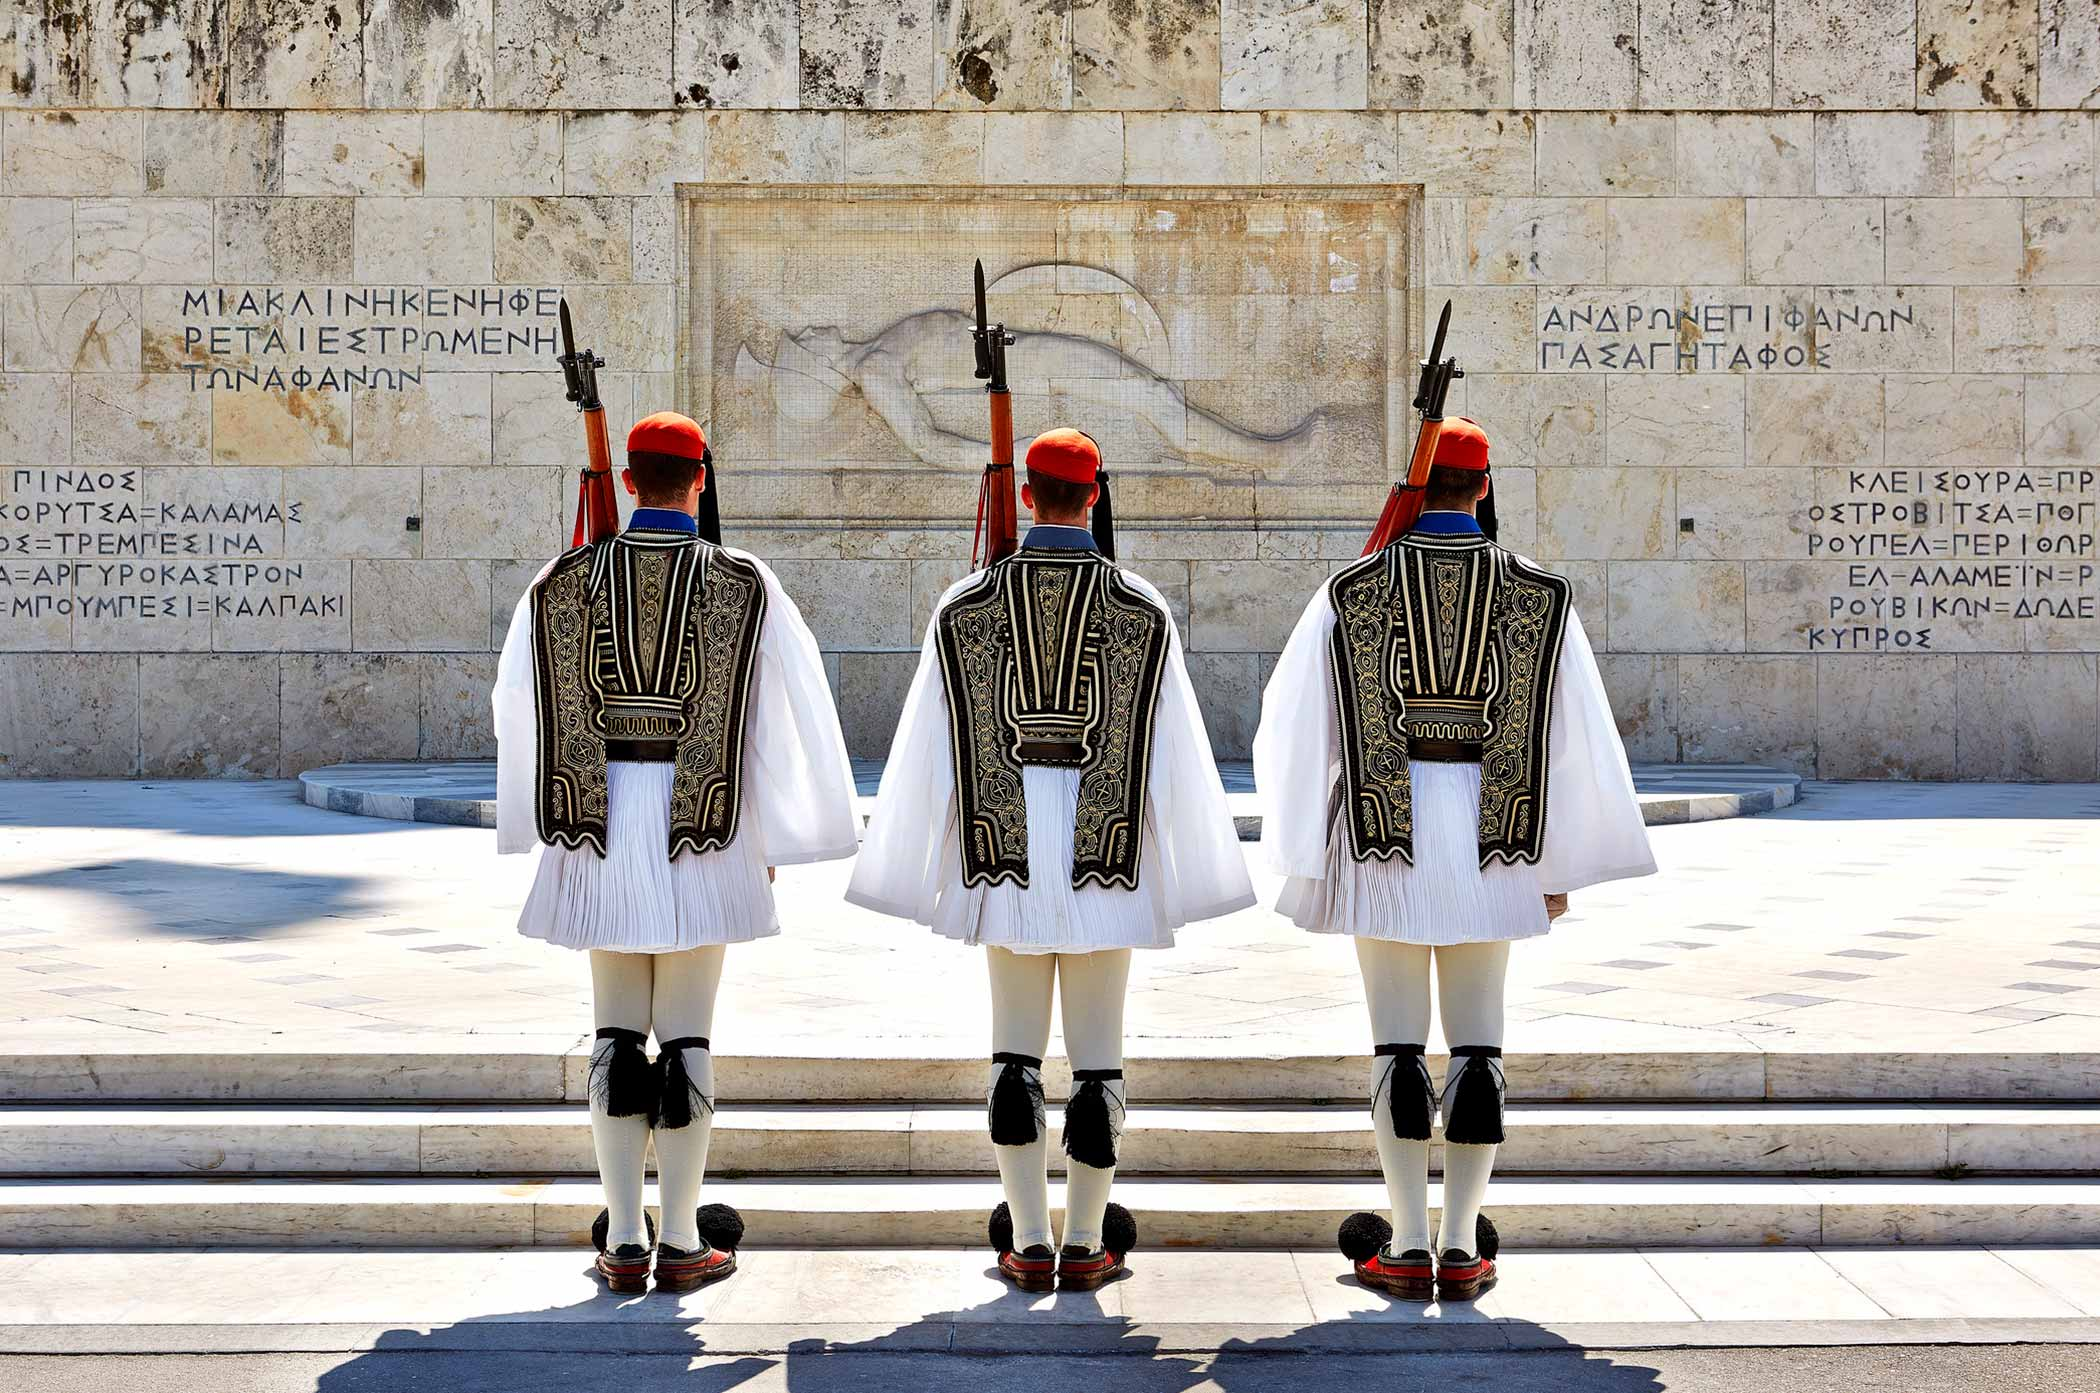 three monarch soldiers standing facing concrete wall